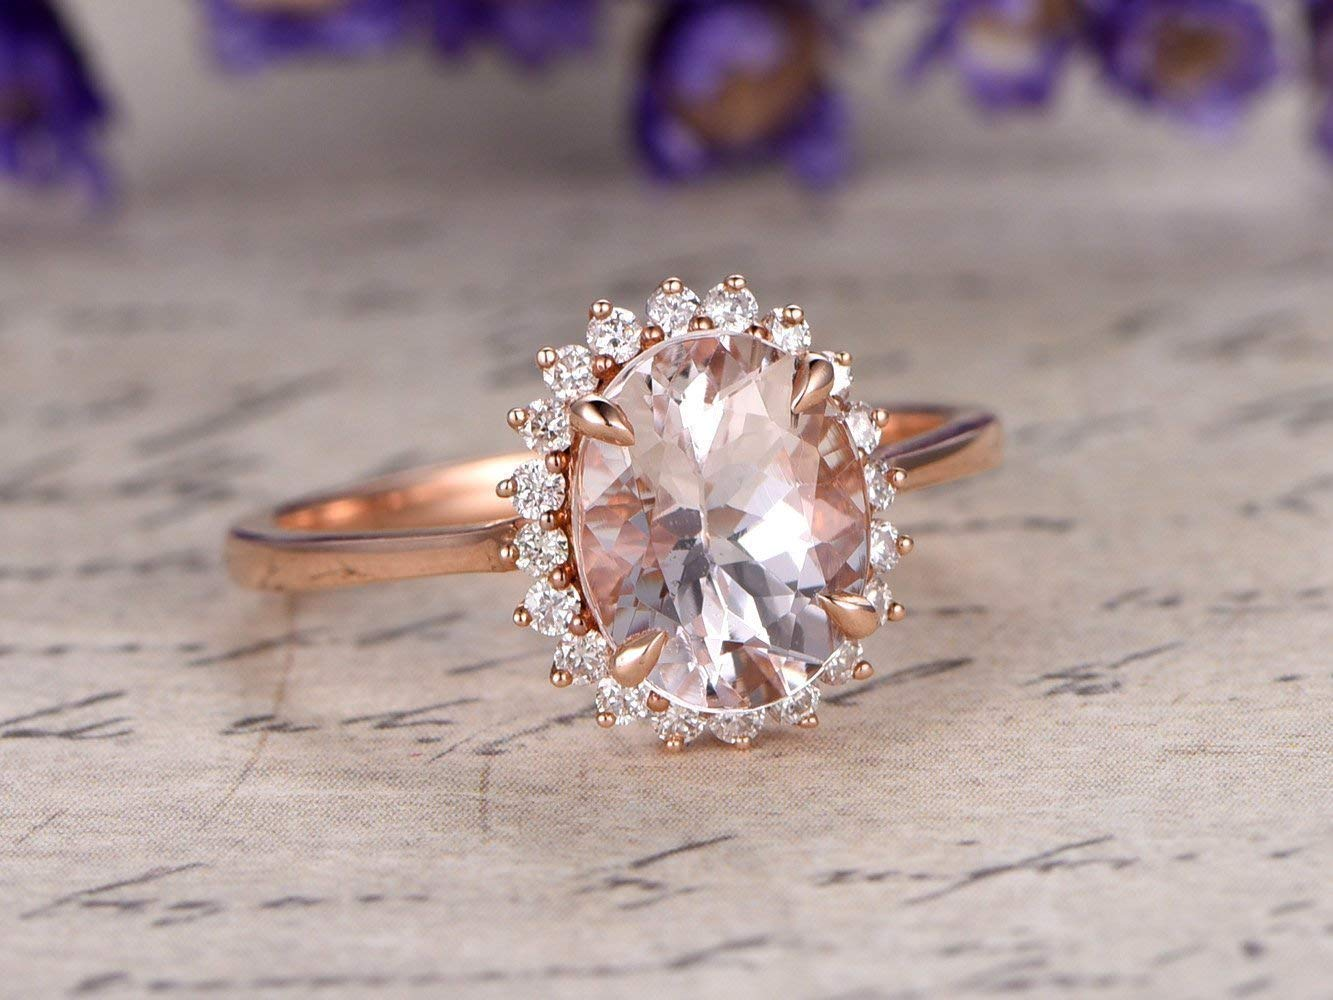 Amazon Com Morganite Solitaire Engagement Ring Solid 14k Rose Gold Diamond Halo Wedding Ring Flower Plain Band Antique 7x9mm Oval Cut Pink Gemstone Bridal Anniversary Gift For Her Floral Promise Handmade